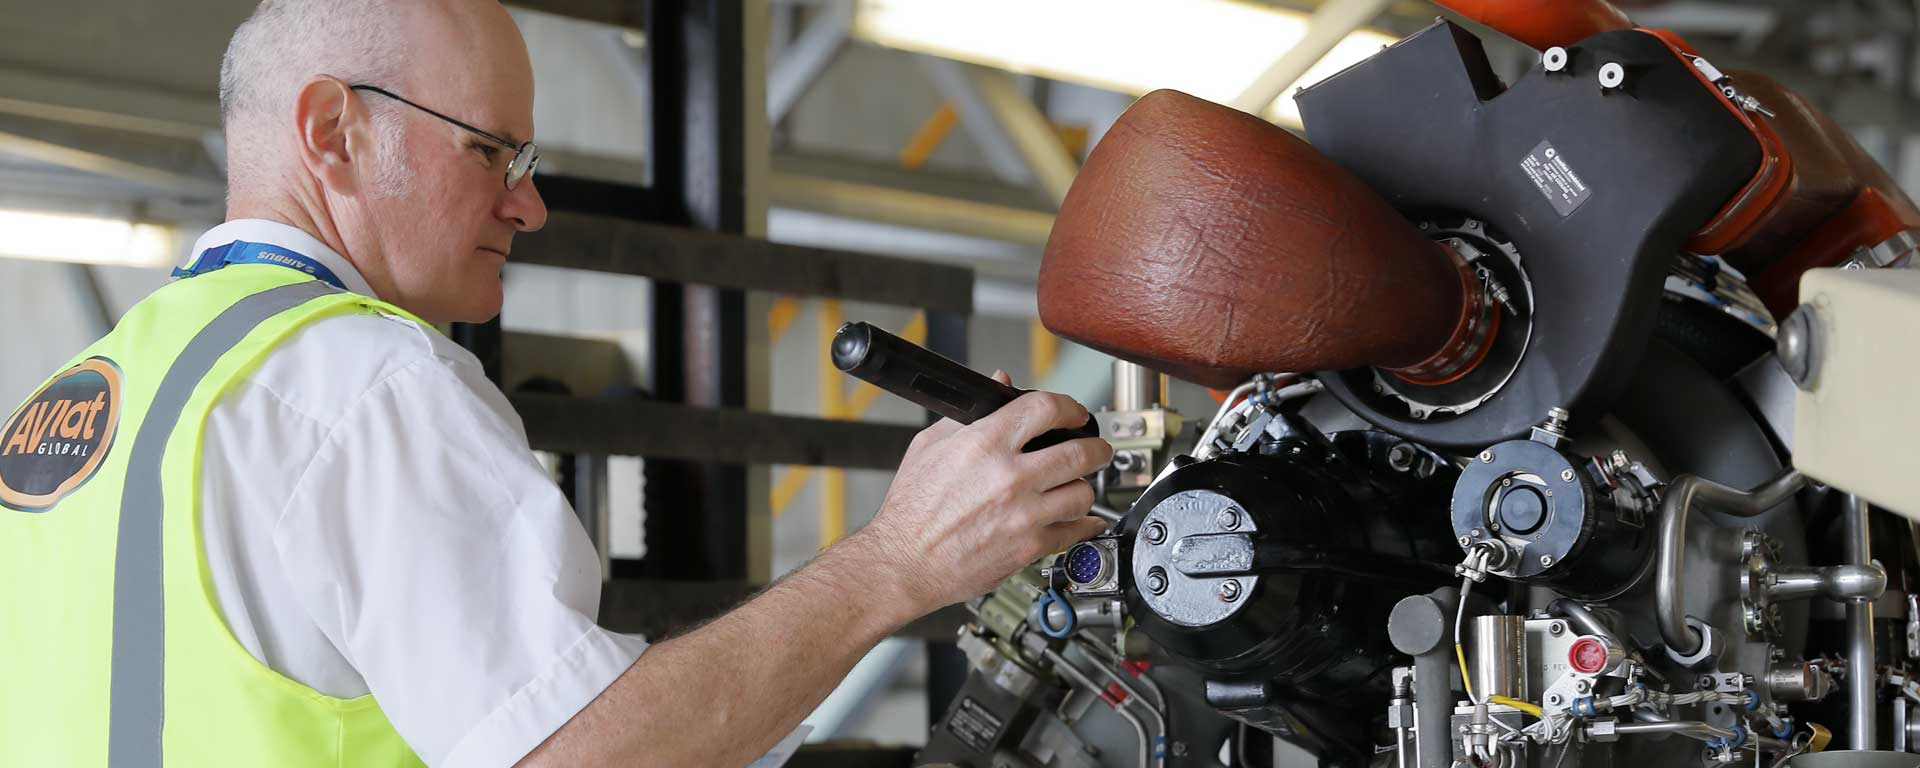 Aviat Global engineer inspecting a jet engine